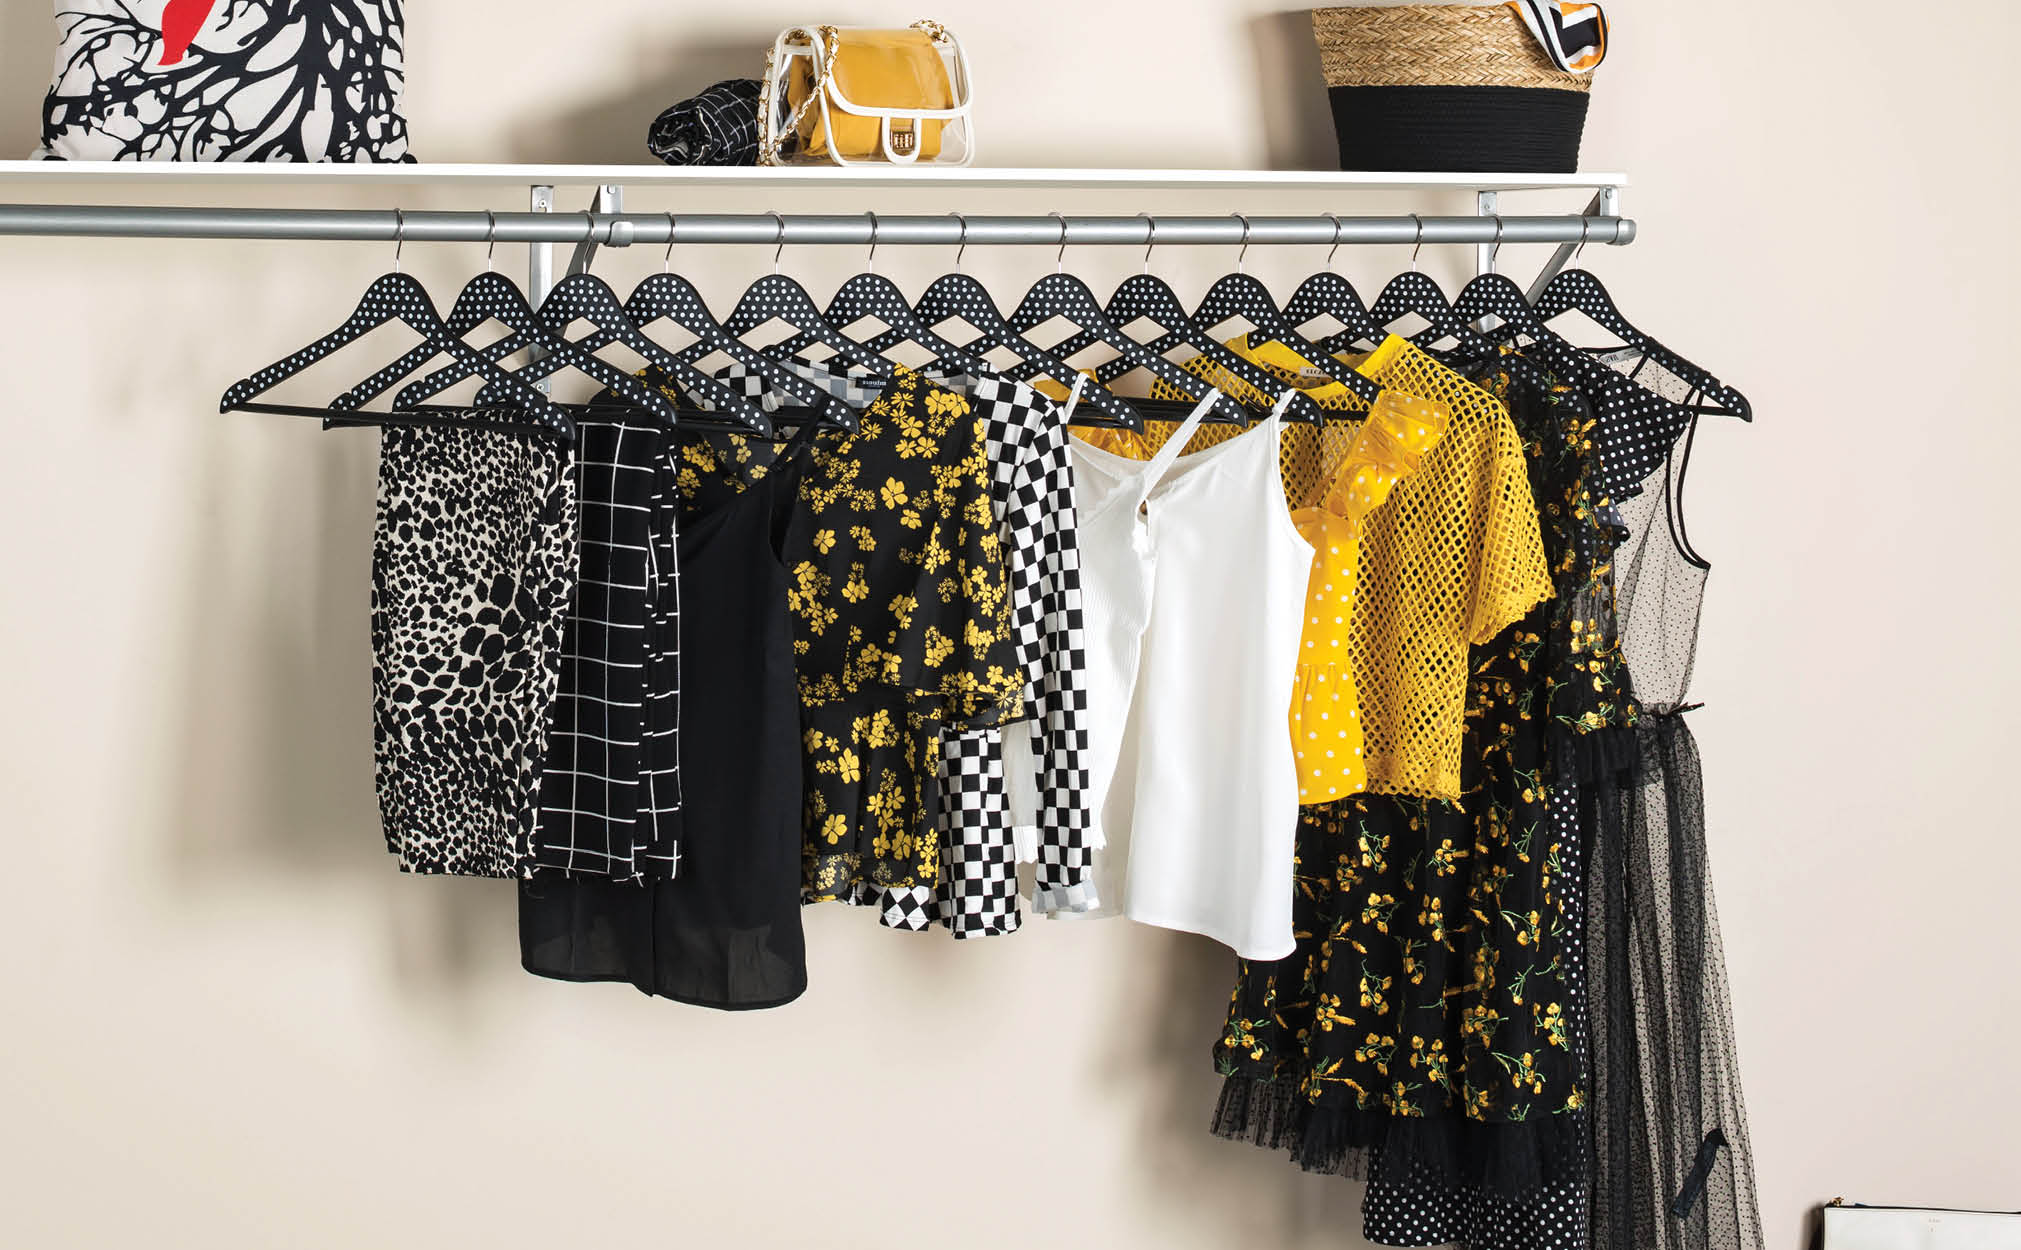 10-Pack Wooden Suit Hanger with Bar; Black with White Polka Dots